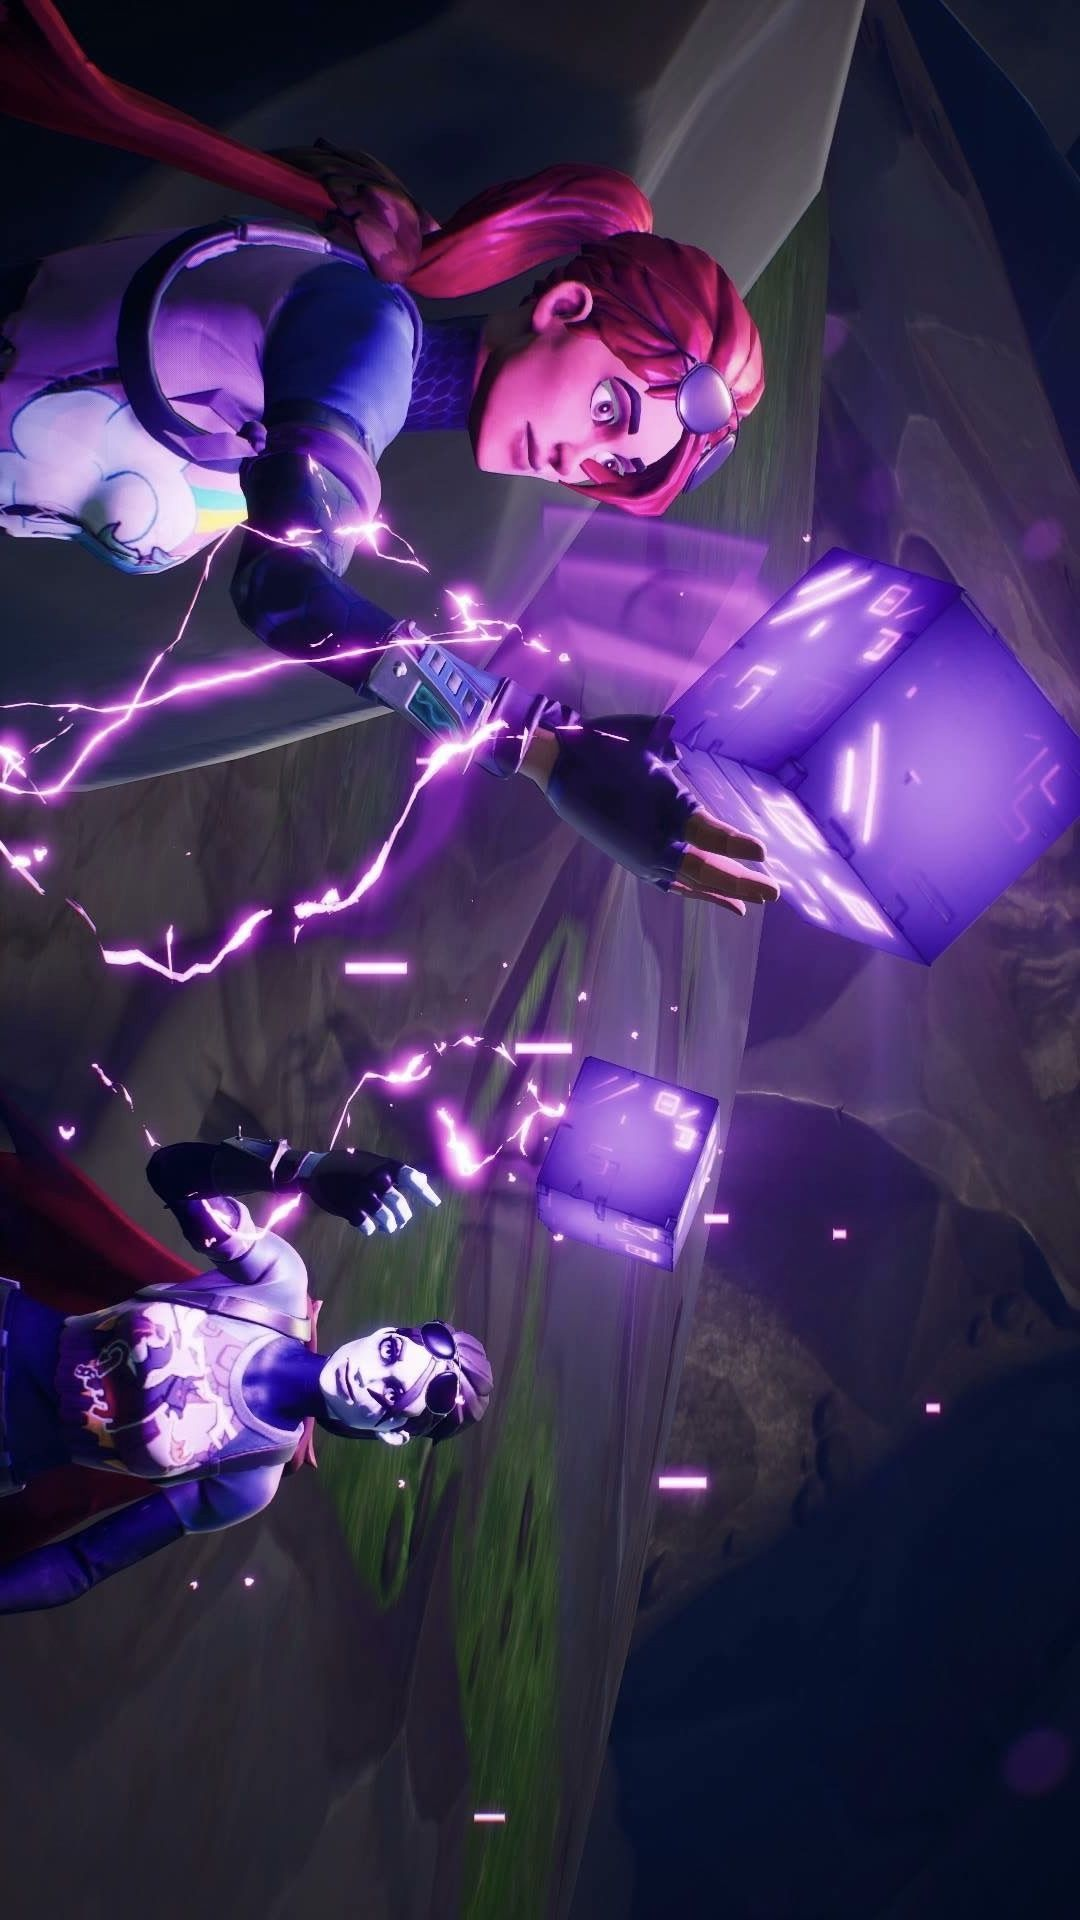 Fortnite Battle Royale Gaming Wallpapers Best Gaming Wallpapers